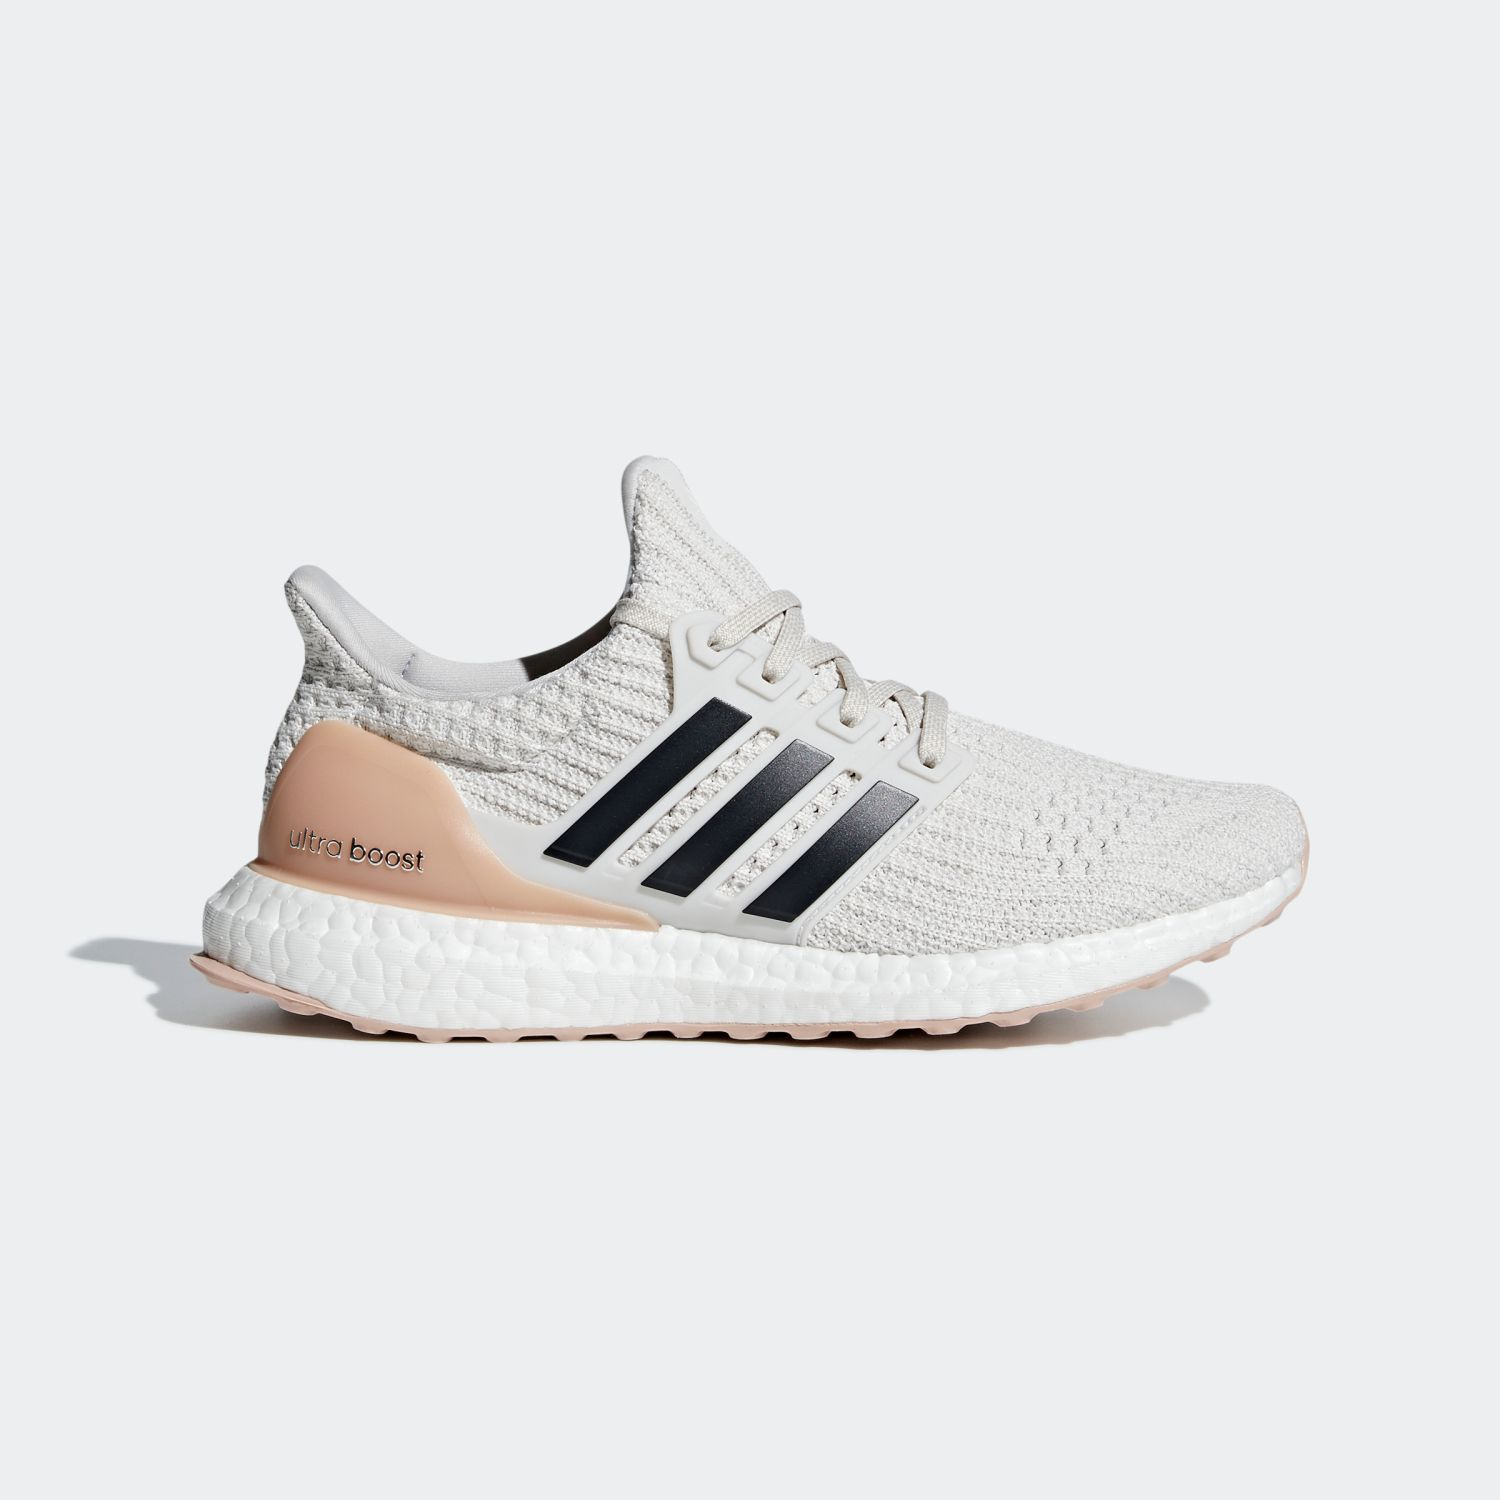 Ultra Boost 4.0 Show Your Stripes Cloud White (ウィメンズ)